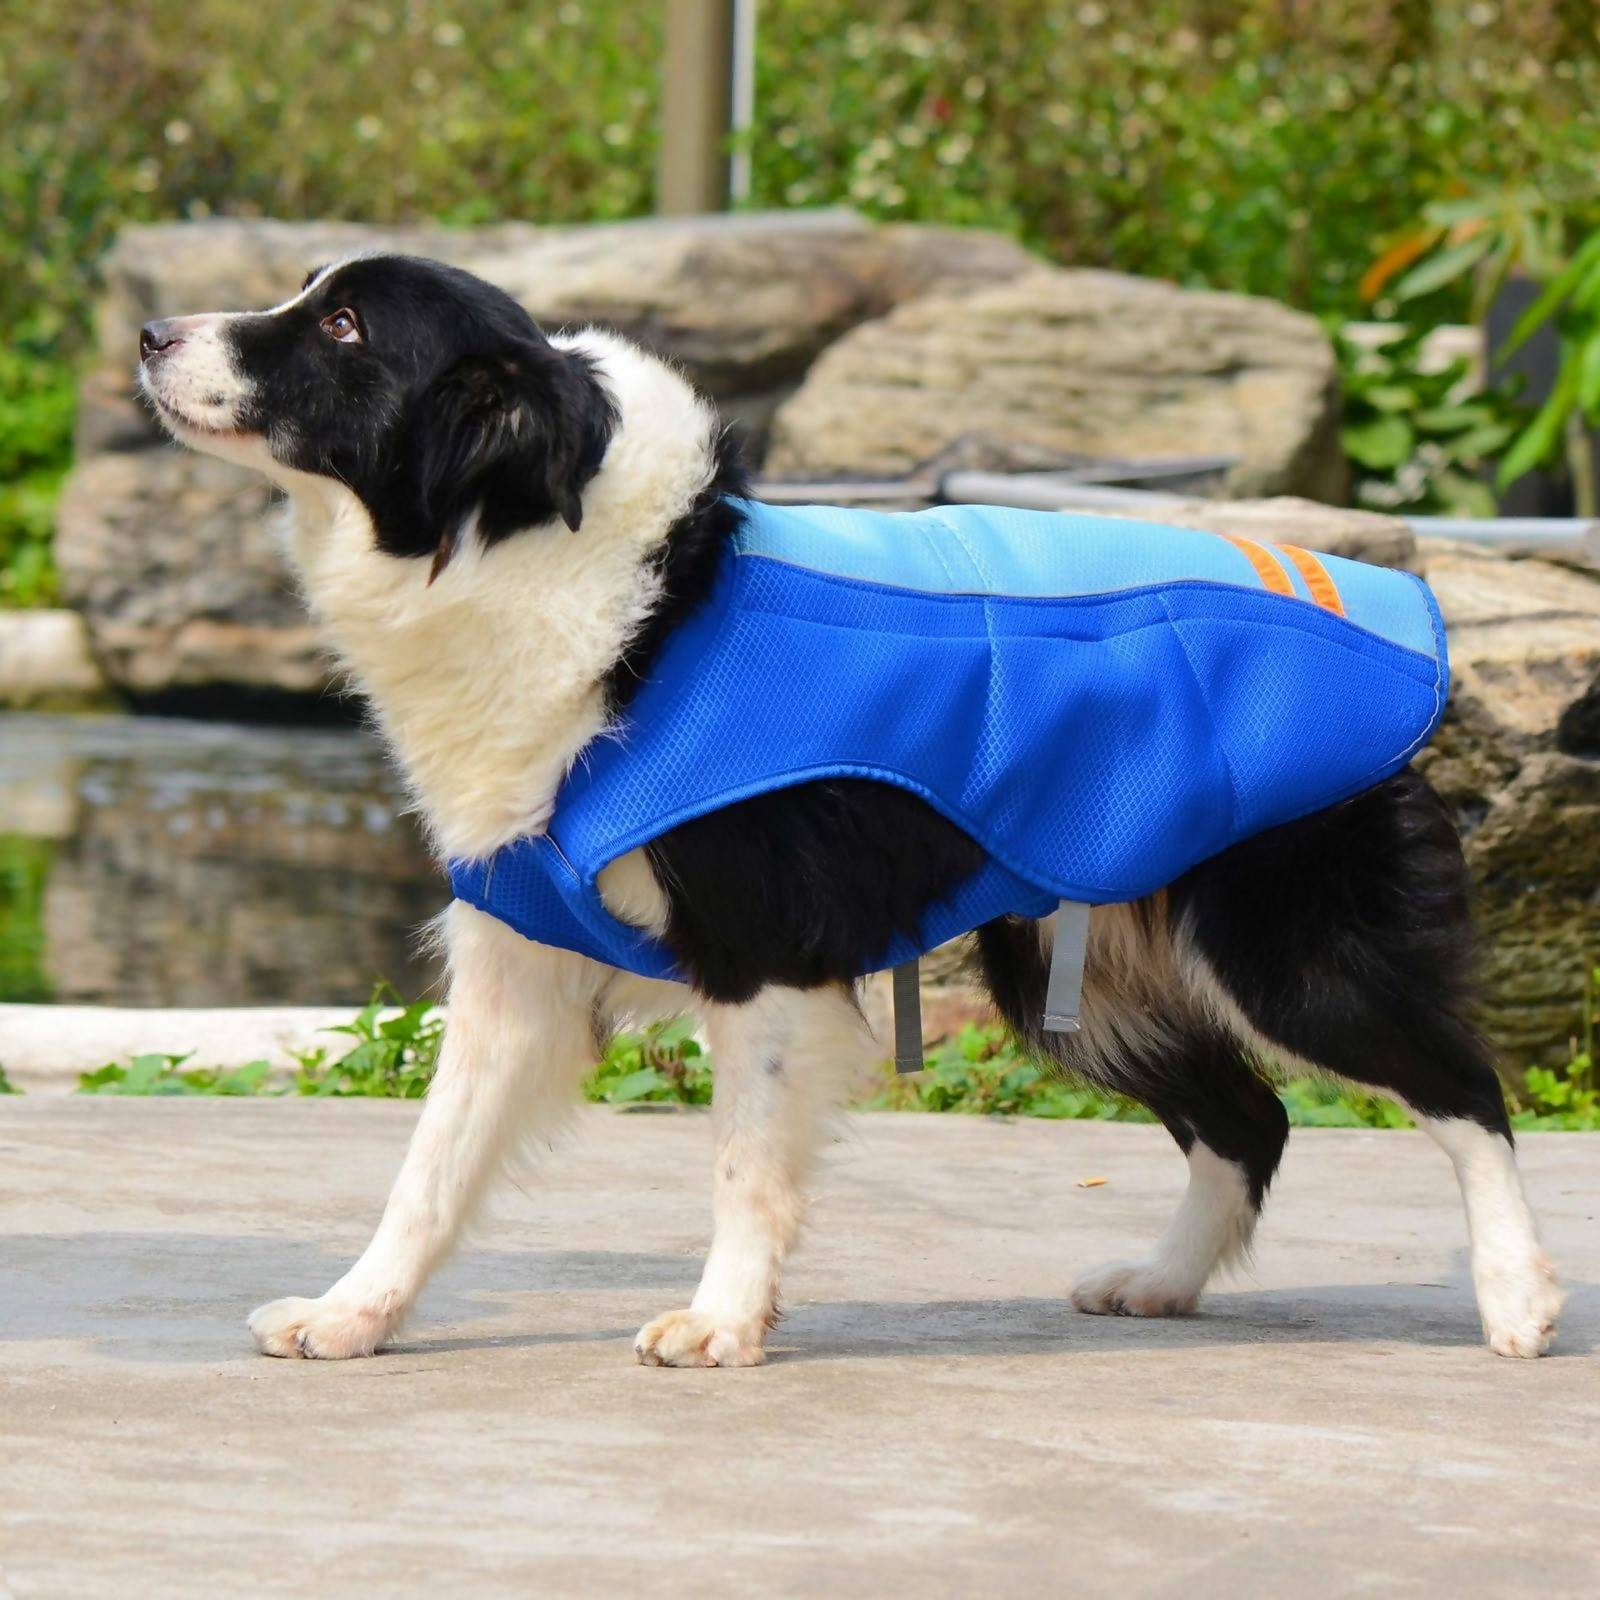 A Border Collie enjoying the summer with a pet cooling vest. Photo by Walmart